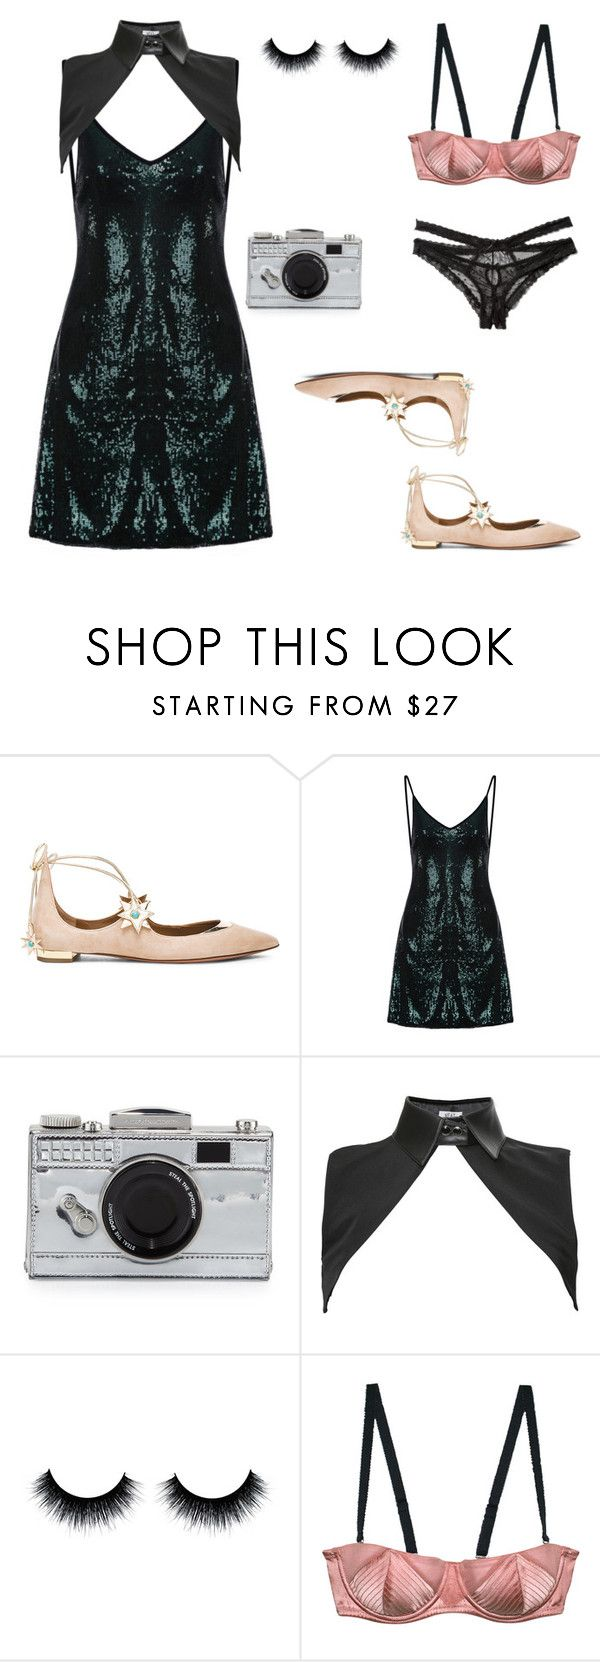 """""""sexy granny"""" by gabrielamovaseghi ❤ liked on Polyvore featuring Aquazzura, Kate Spade, Neat Collar, Fleur du Mal and Honeydew Intimates"""